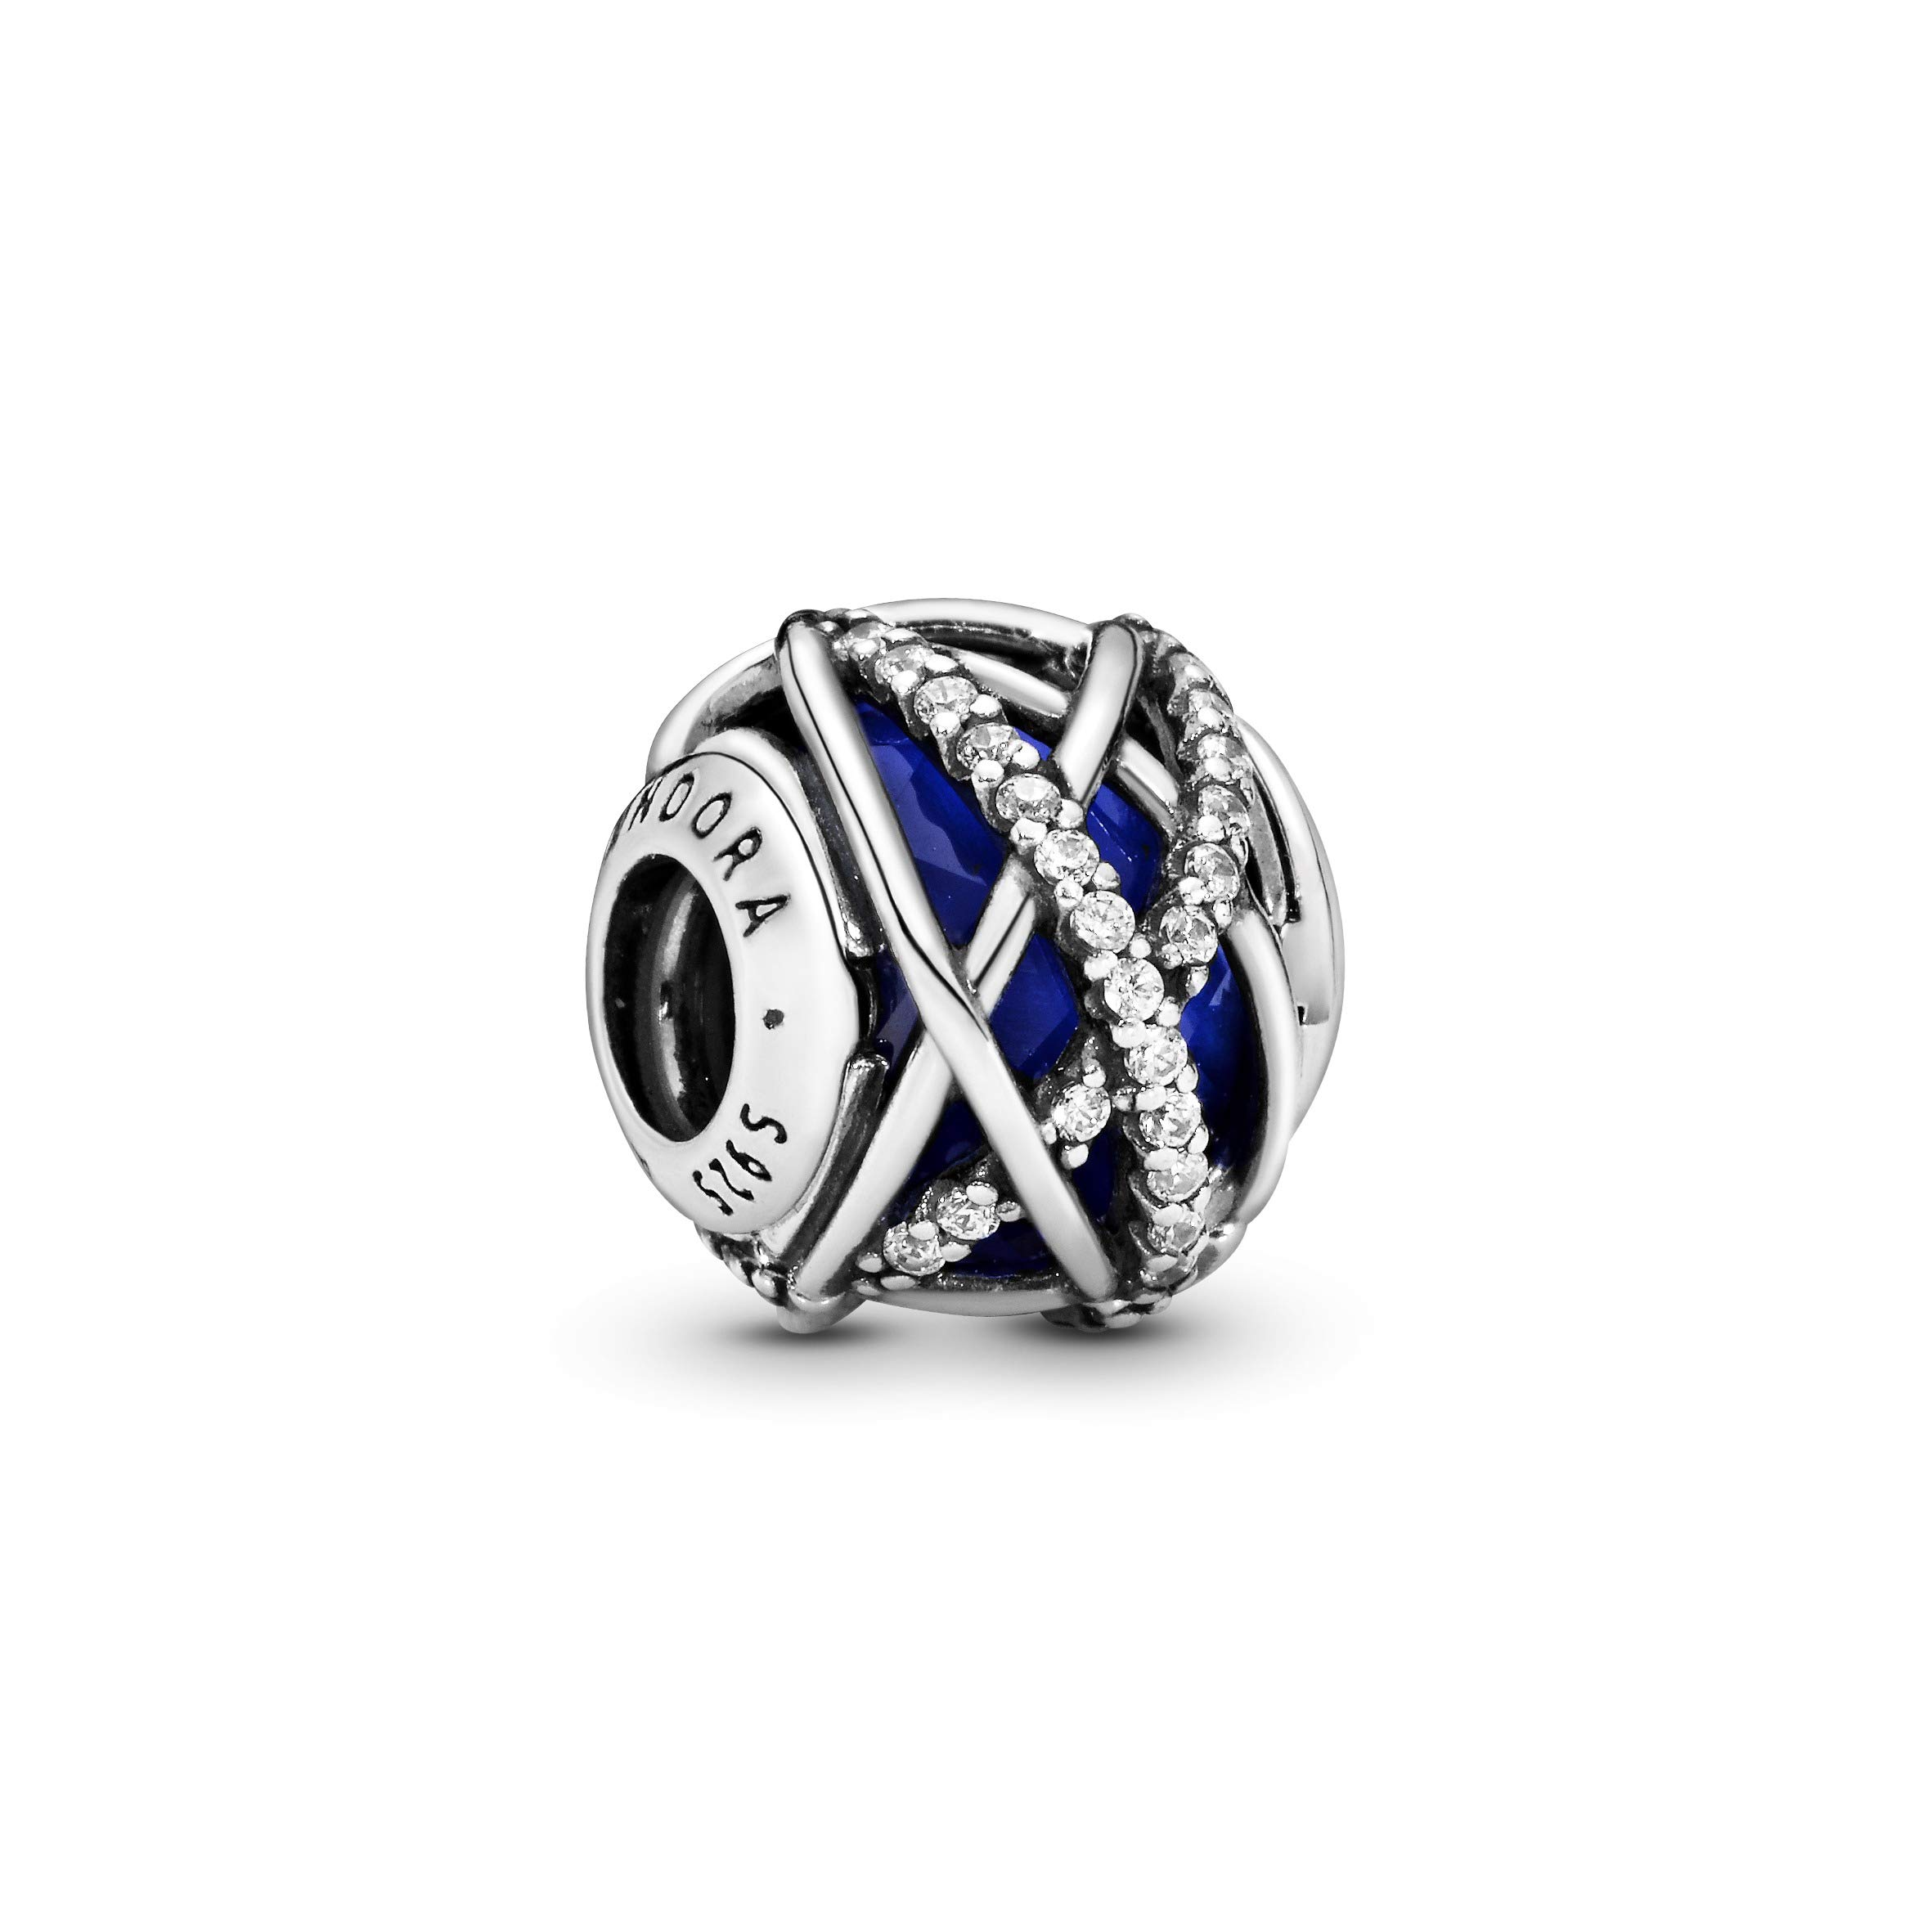 Pandora Jewelry Blue Galaxy Crystal and Cubic Zirconia Charm in Sterling Silver